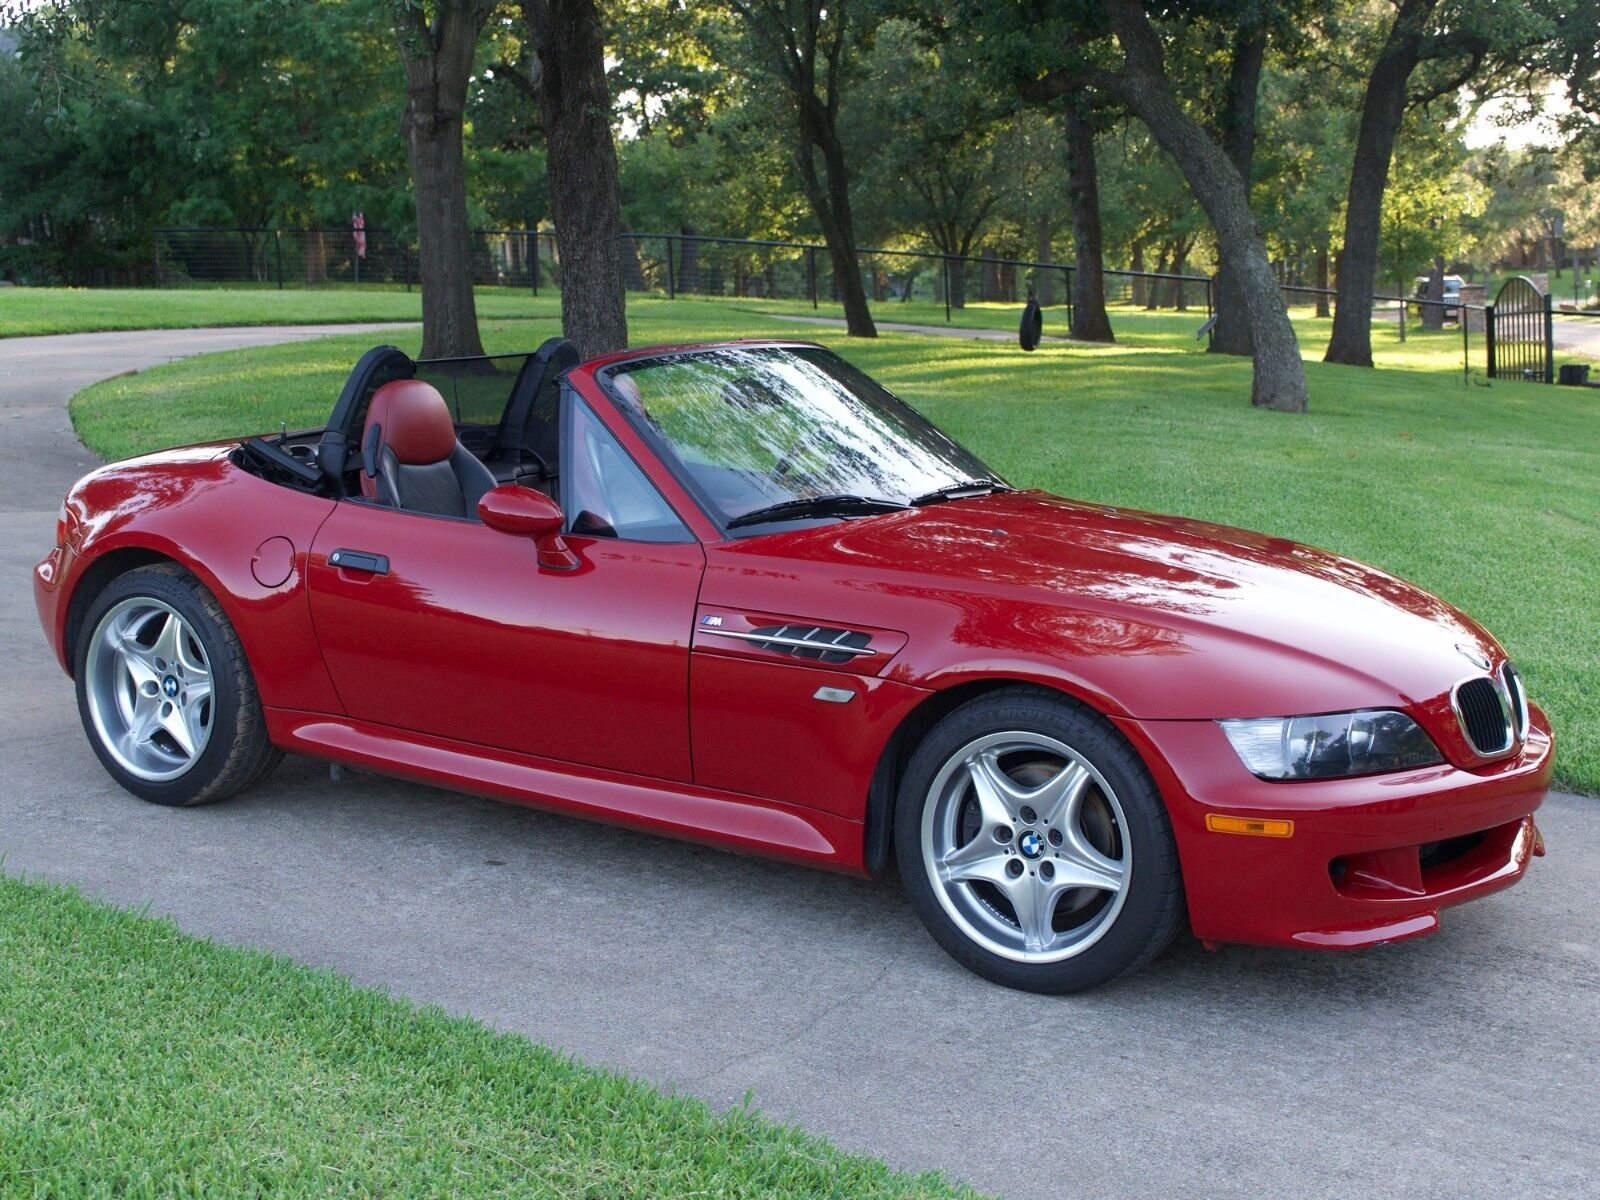 2000 Bmw Z3 M Roadster Imola Red - One Of A Kind - Only ...